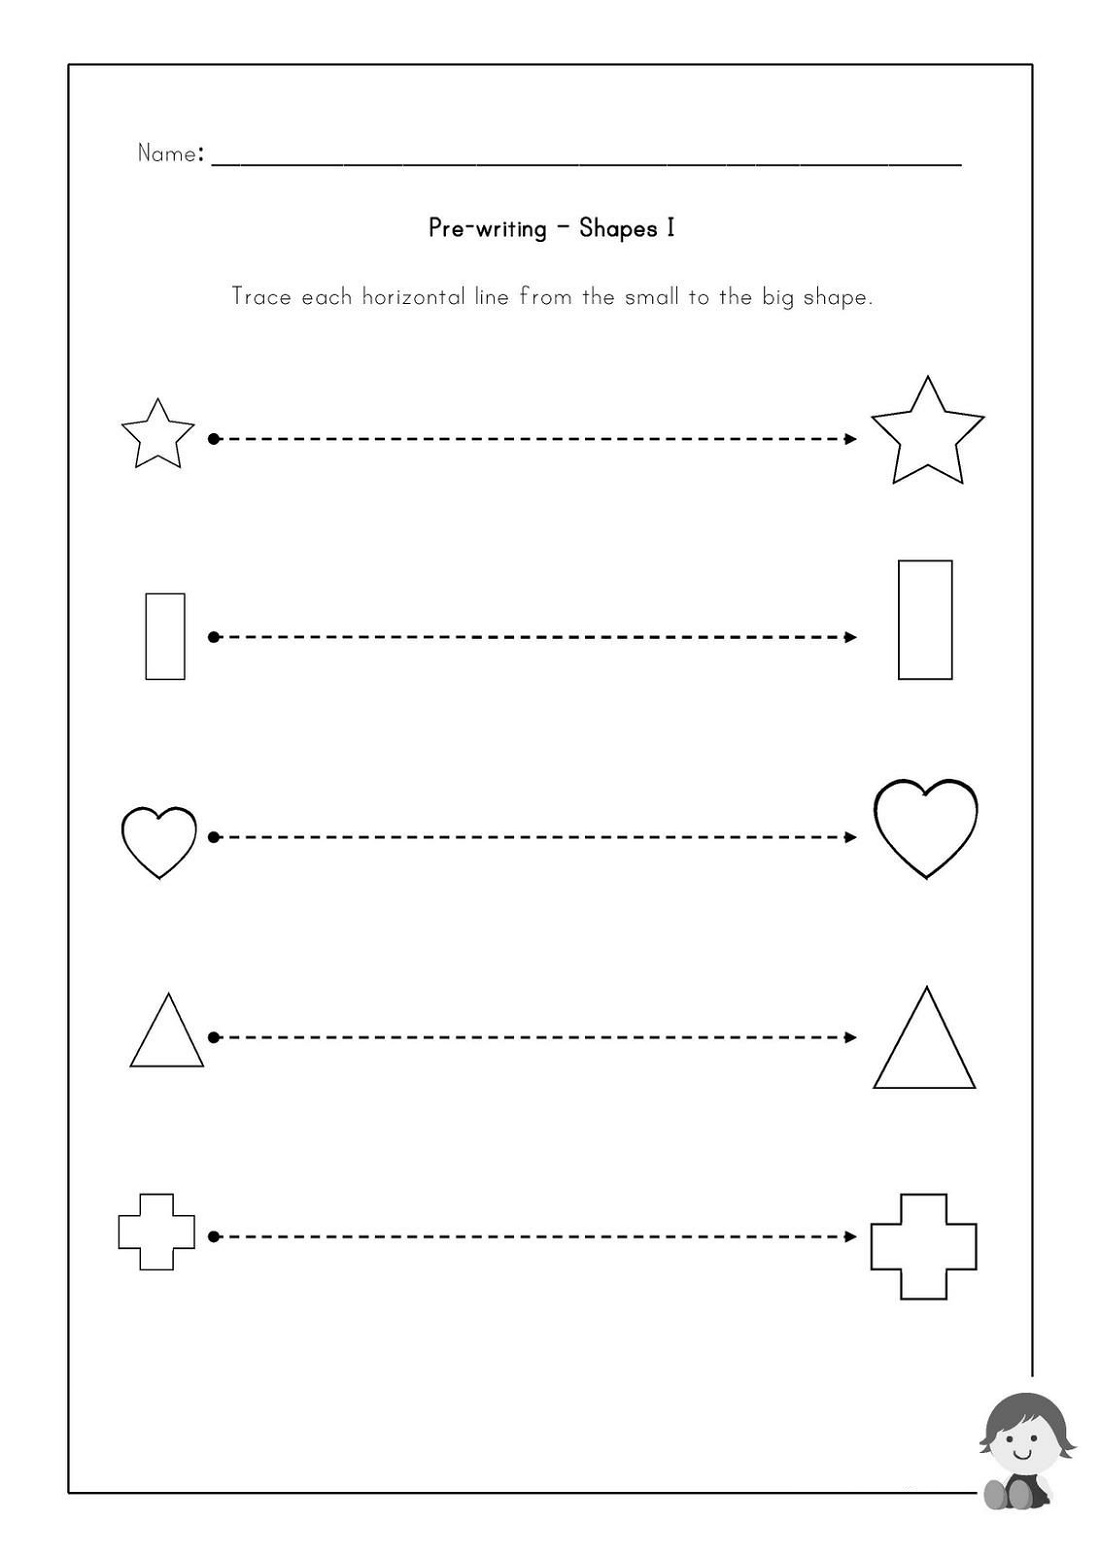 Printable Learning Activities For 2 Year Olds Free K5 Worksheets